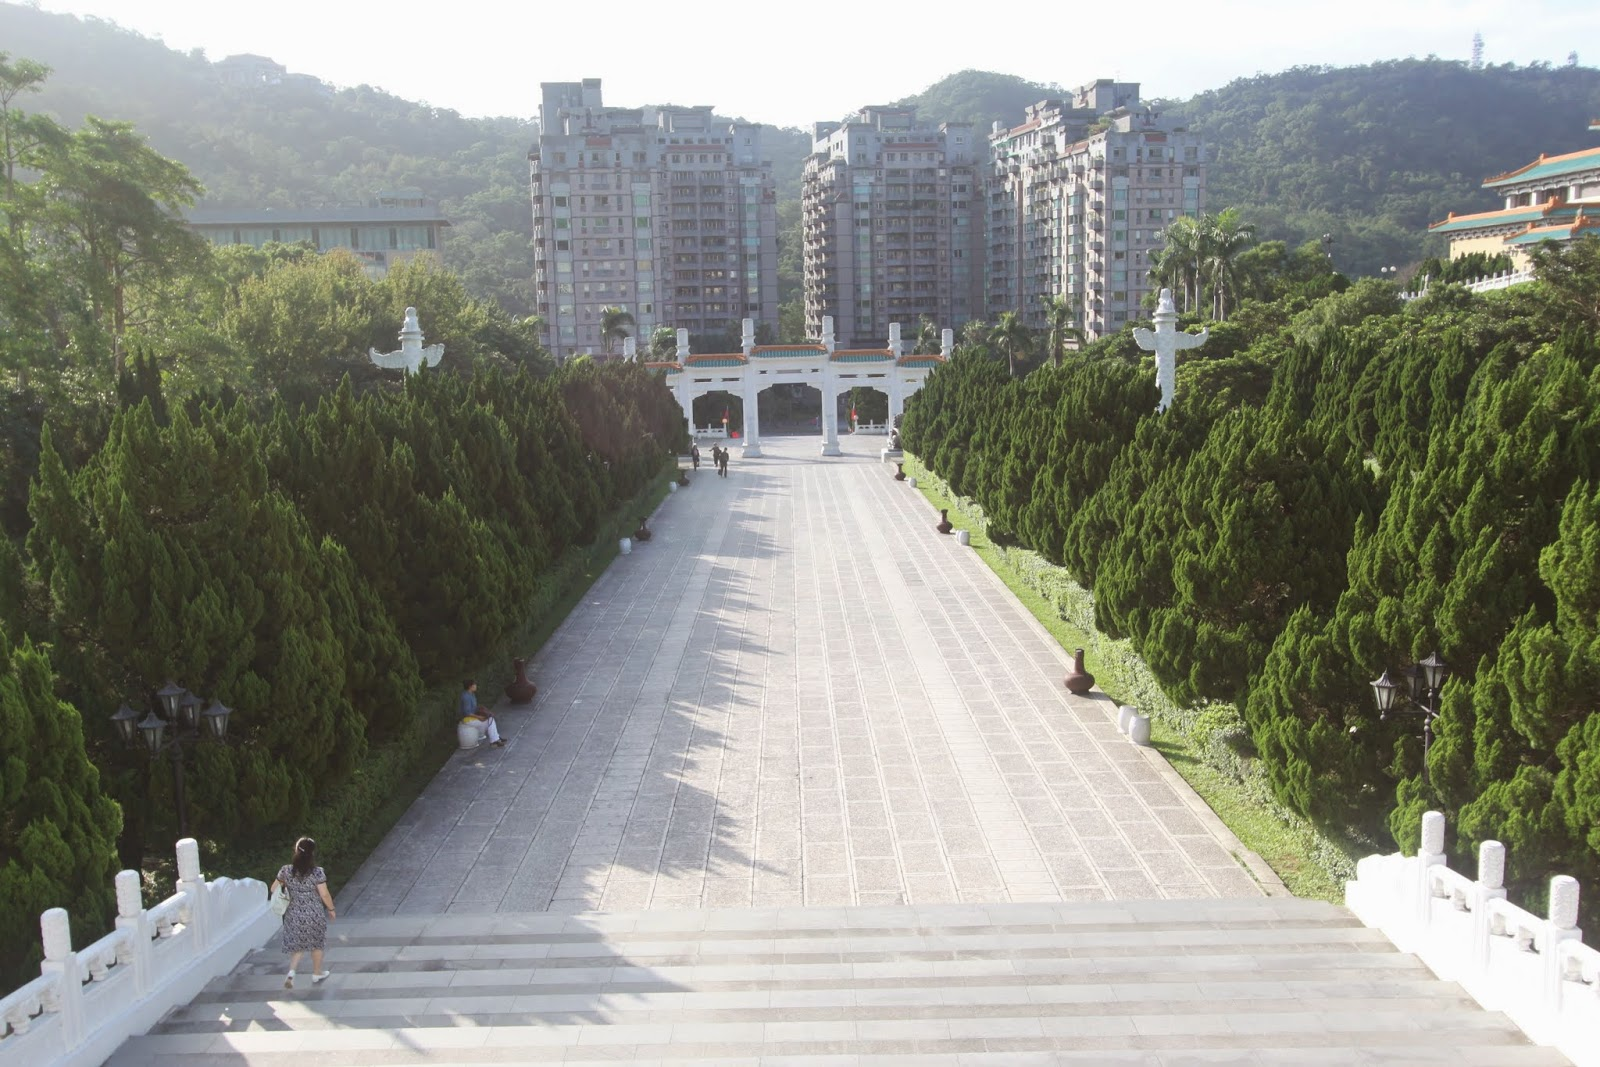 A long walking entrance towards the main building of National Palace Museum in Taipei, Taiwan